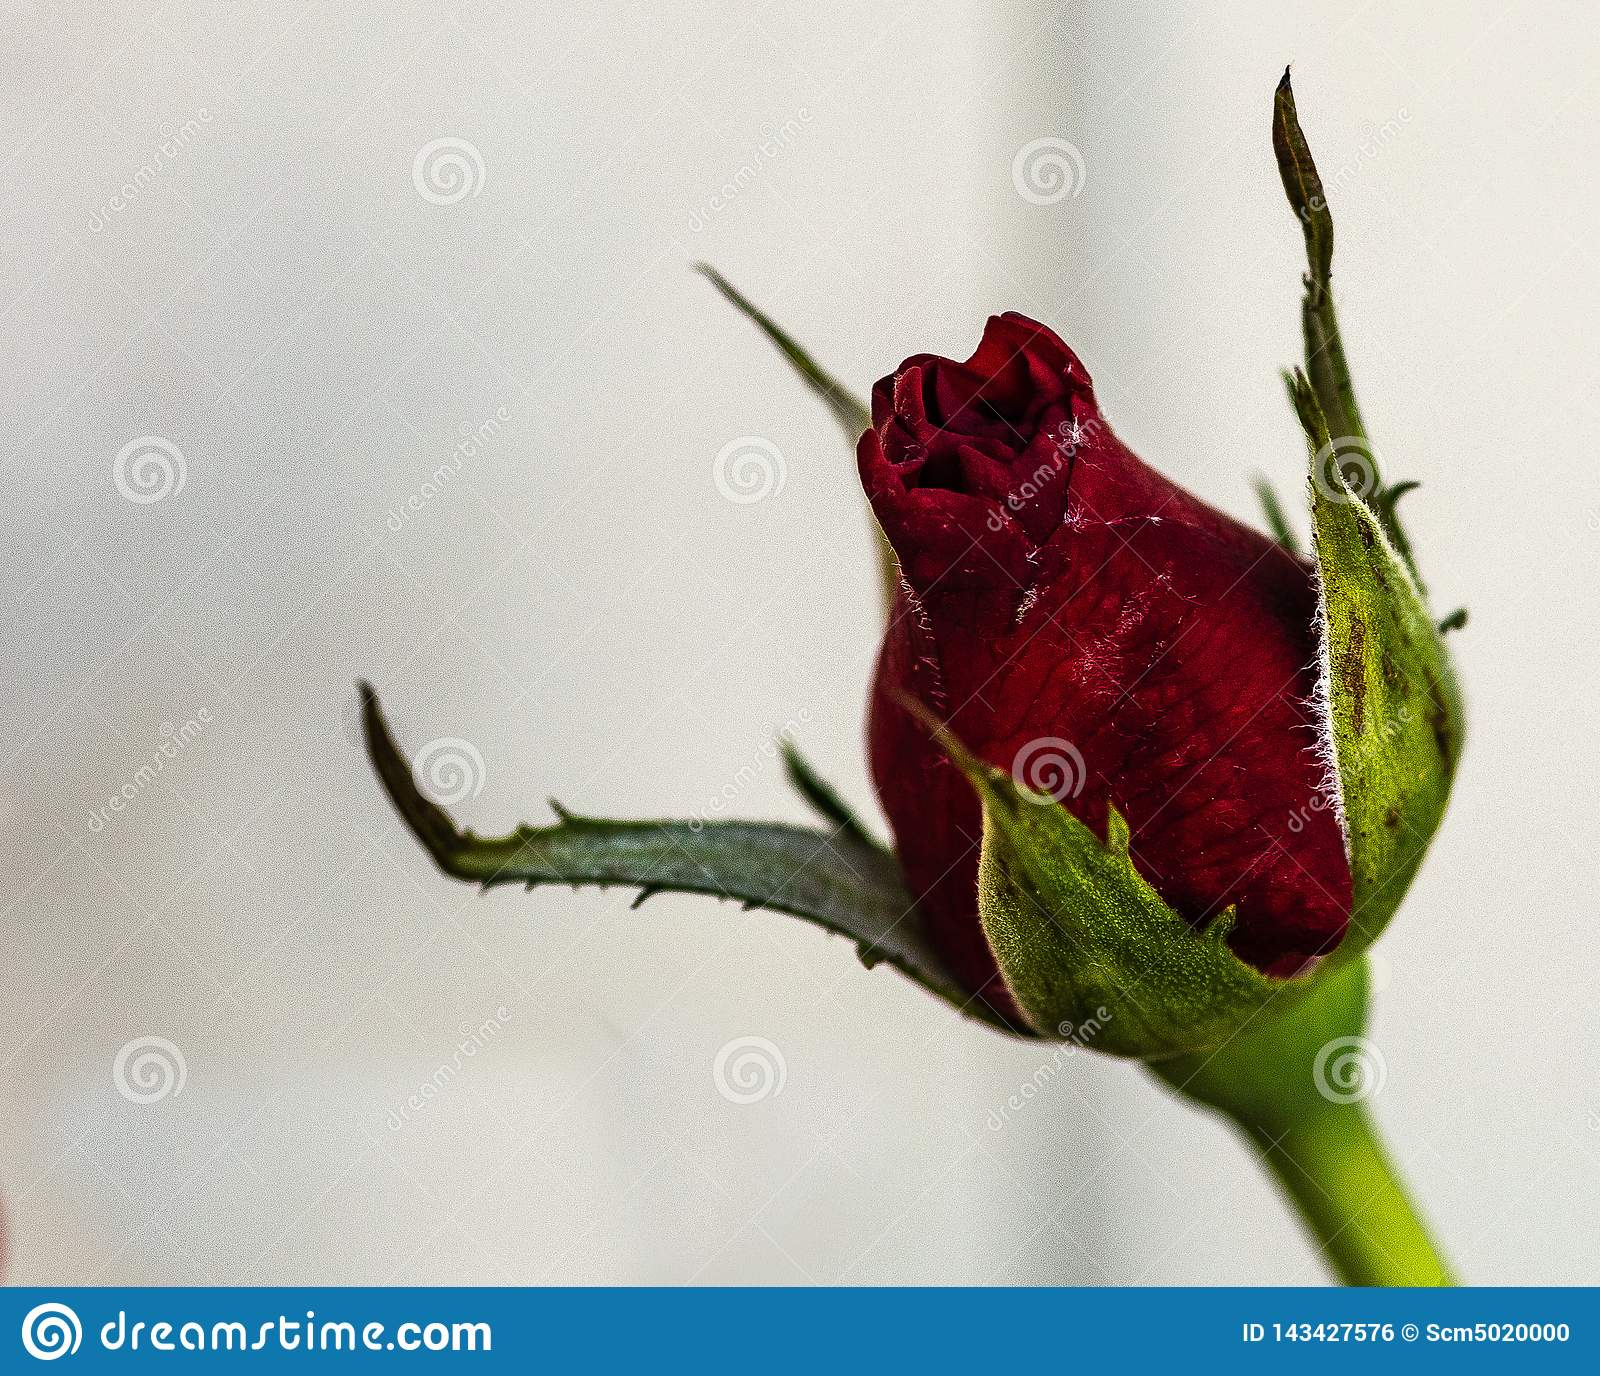 Just opening of Red rose bud